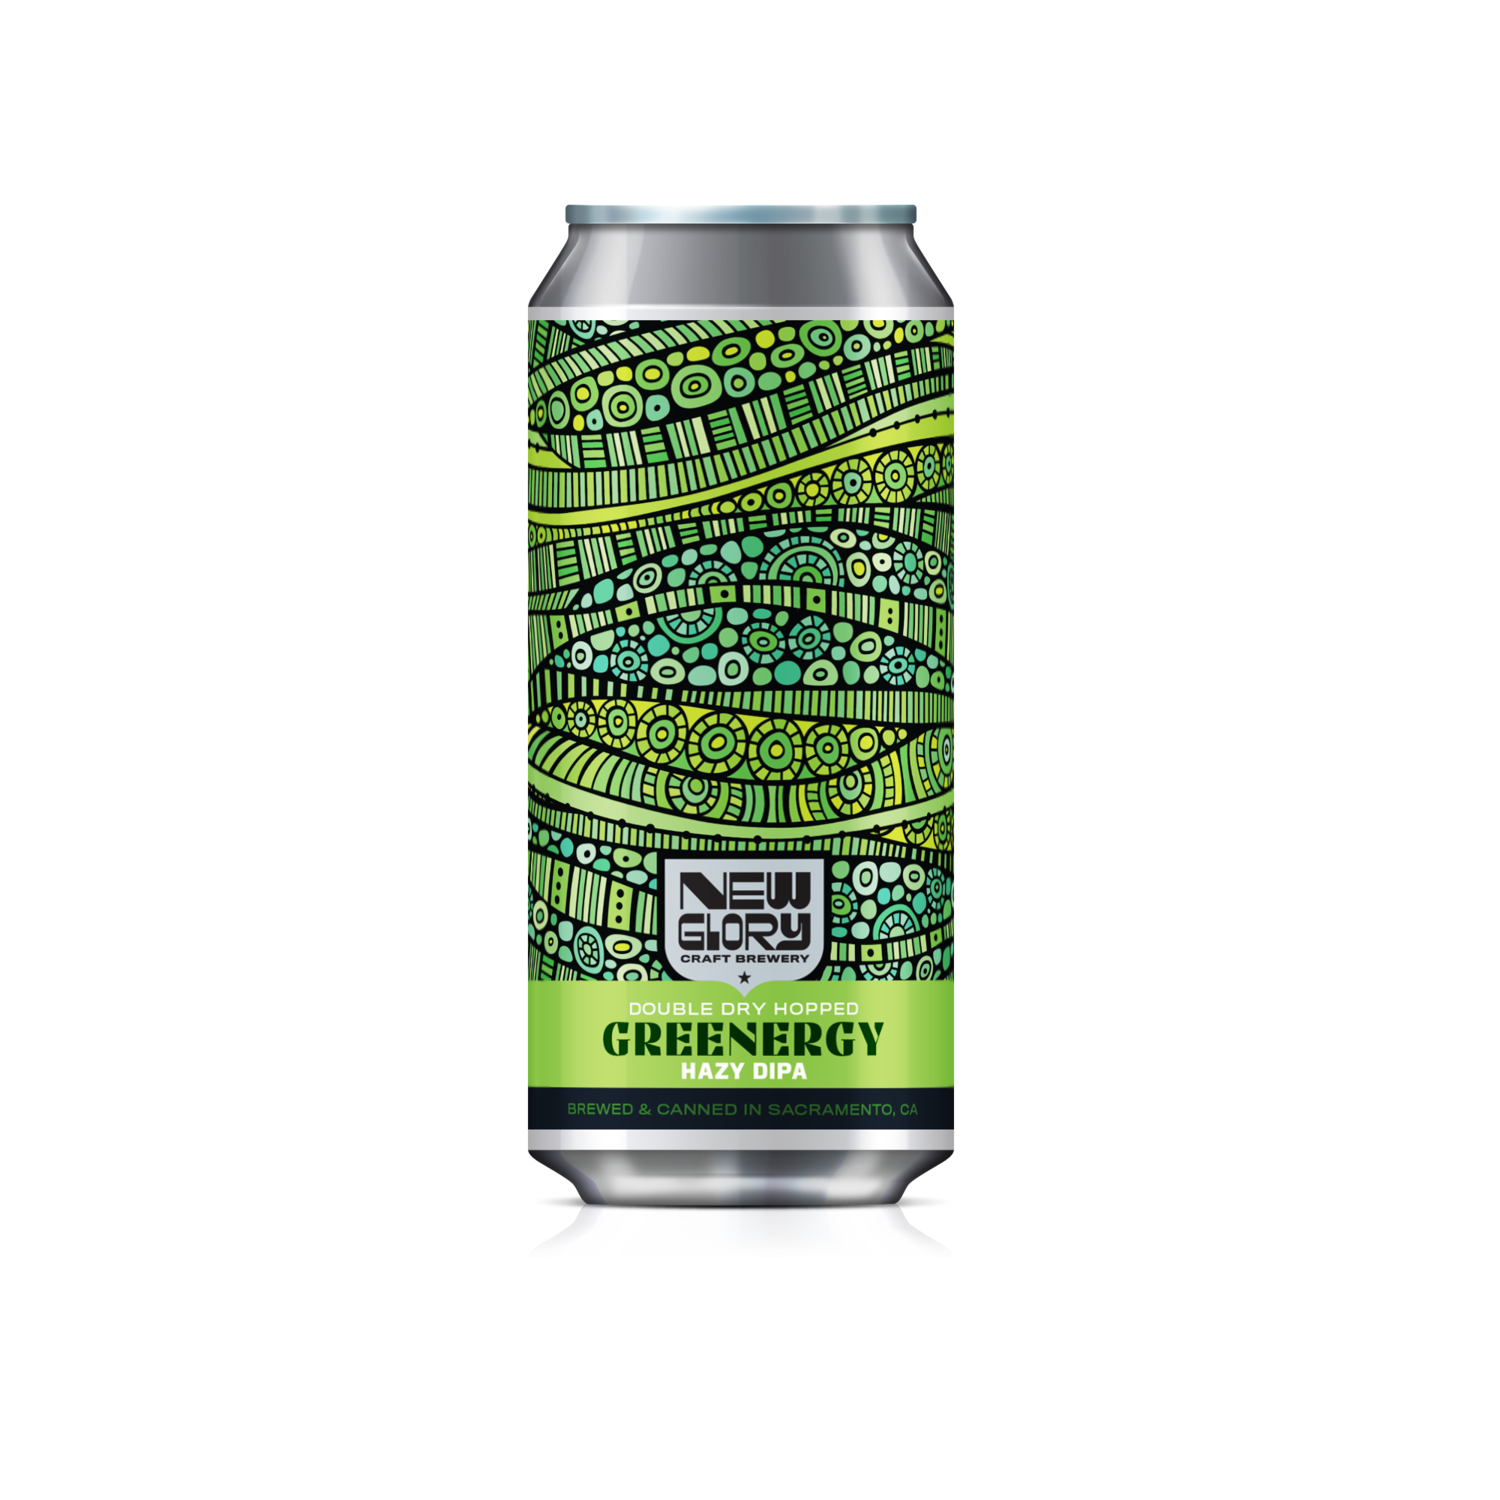 *PRE ORDER* DDH Greenergy (6) 4-Packs *Shipping for CA Only